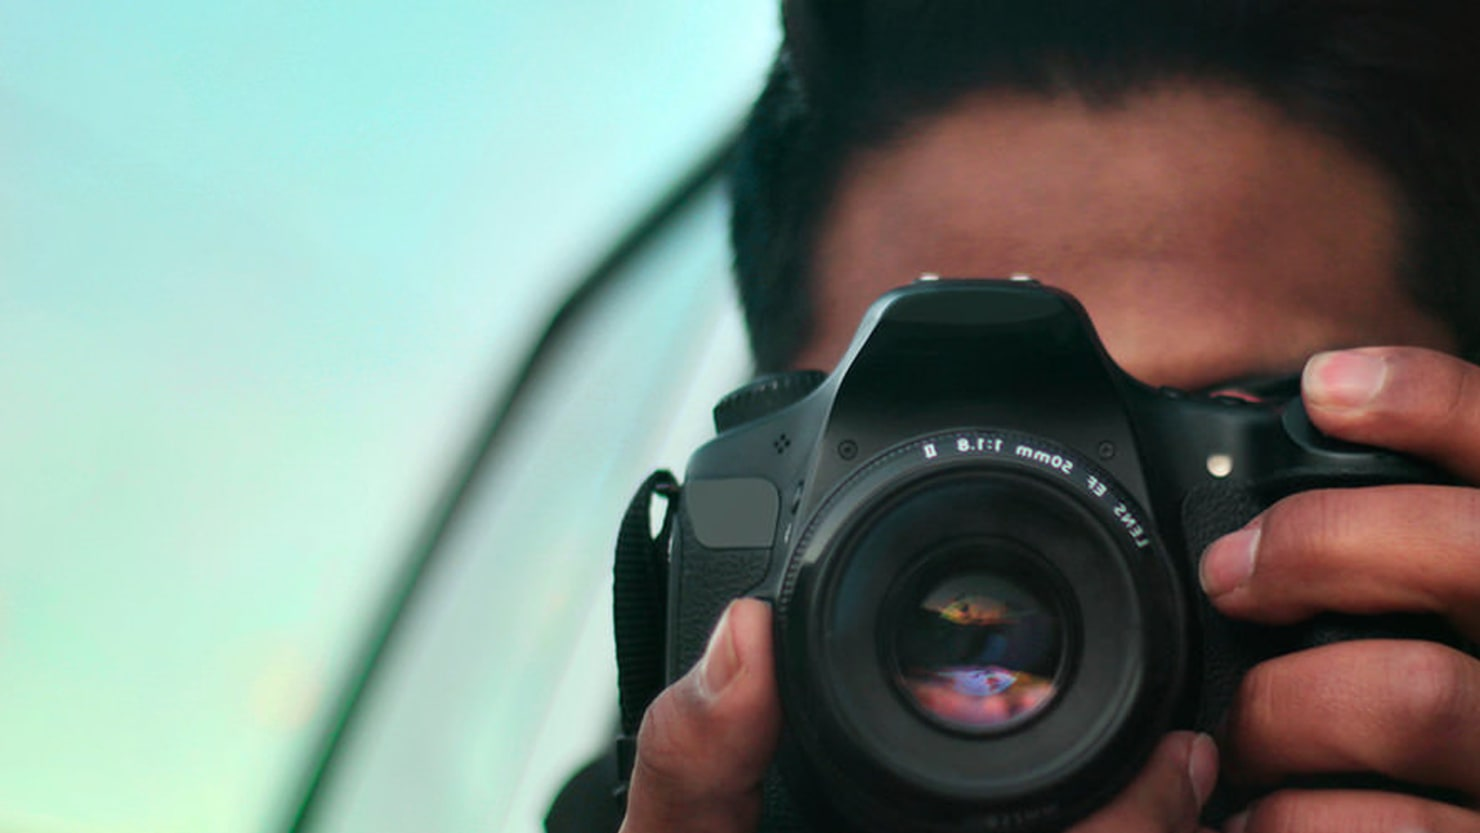 Learn To Take And Edit Better Photos With Your Phone Or DSLR